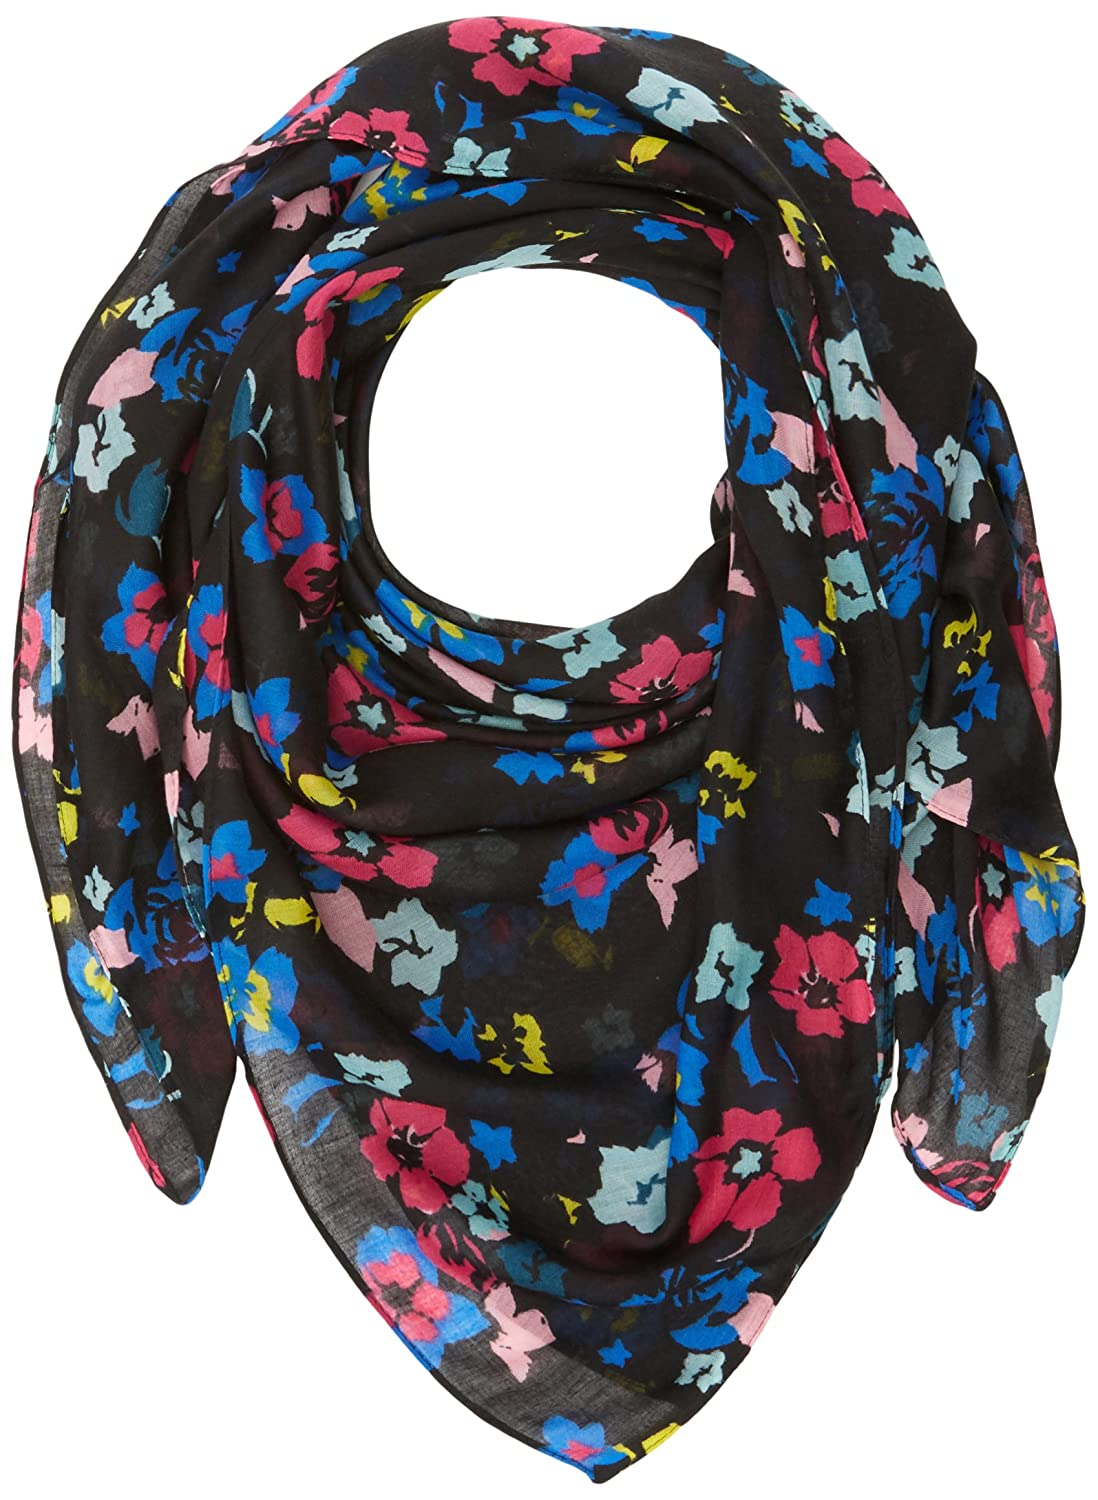 Pepe Jeans Kandy Scarf PL110510, Scialle Donna, Multicolore (Multi 0AA), One Size